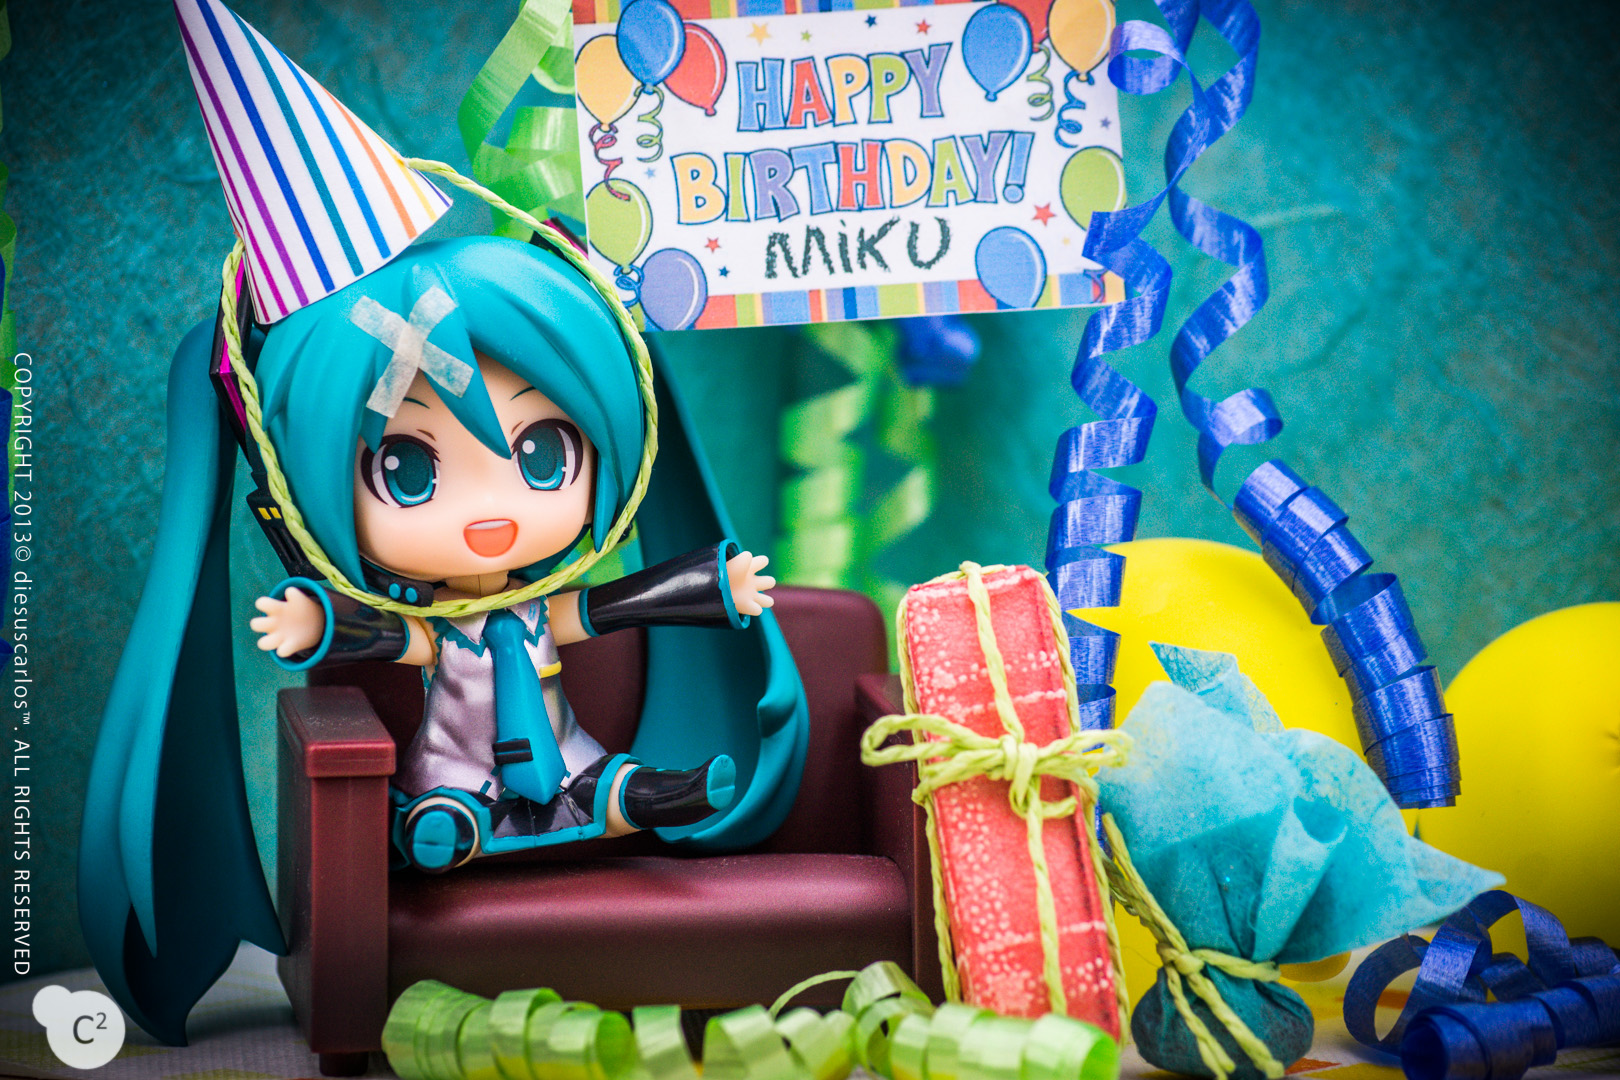 Hatsune Miku The 6th Birthday A Figures Story